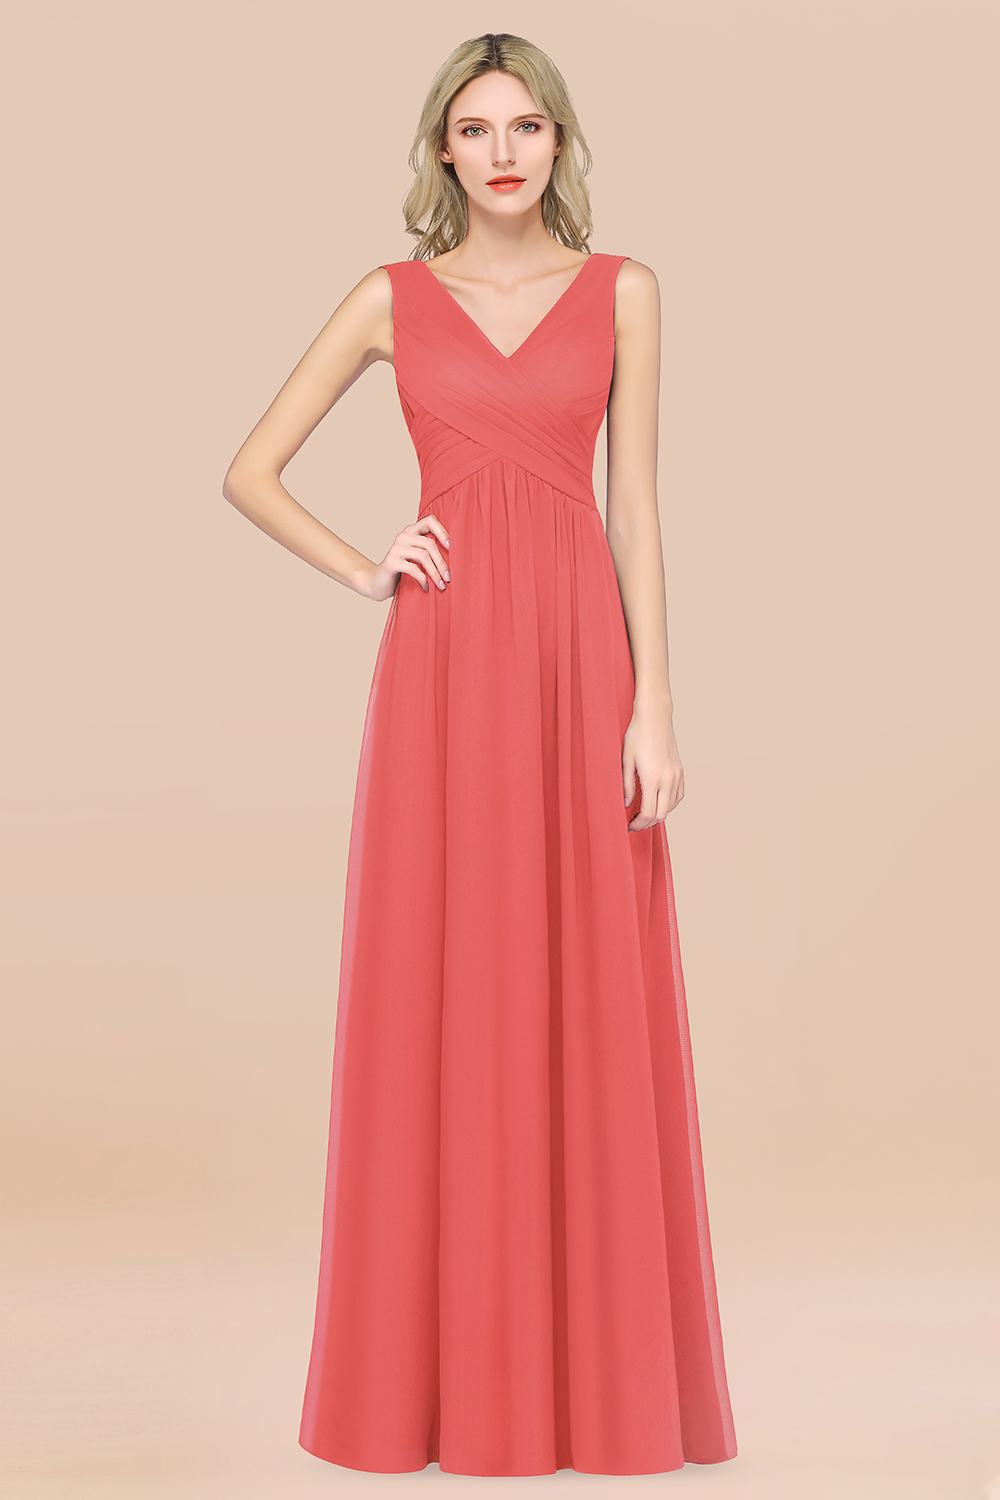 BMbridal Glamorous Chiffon V-Neck Sleeveless Burgundy Bridesmaid Dress with Draped Back